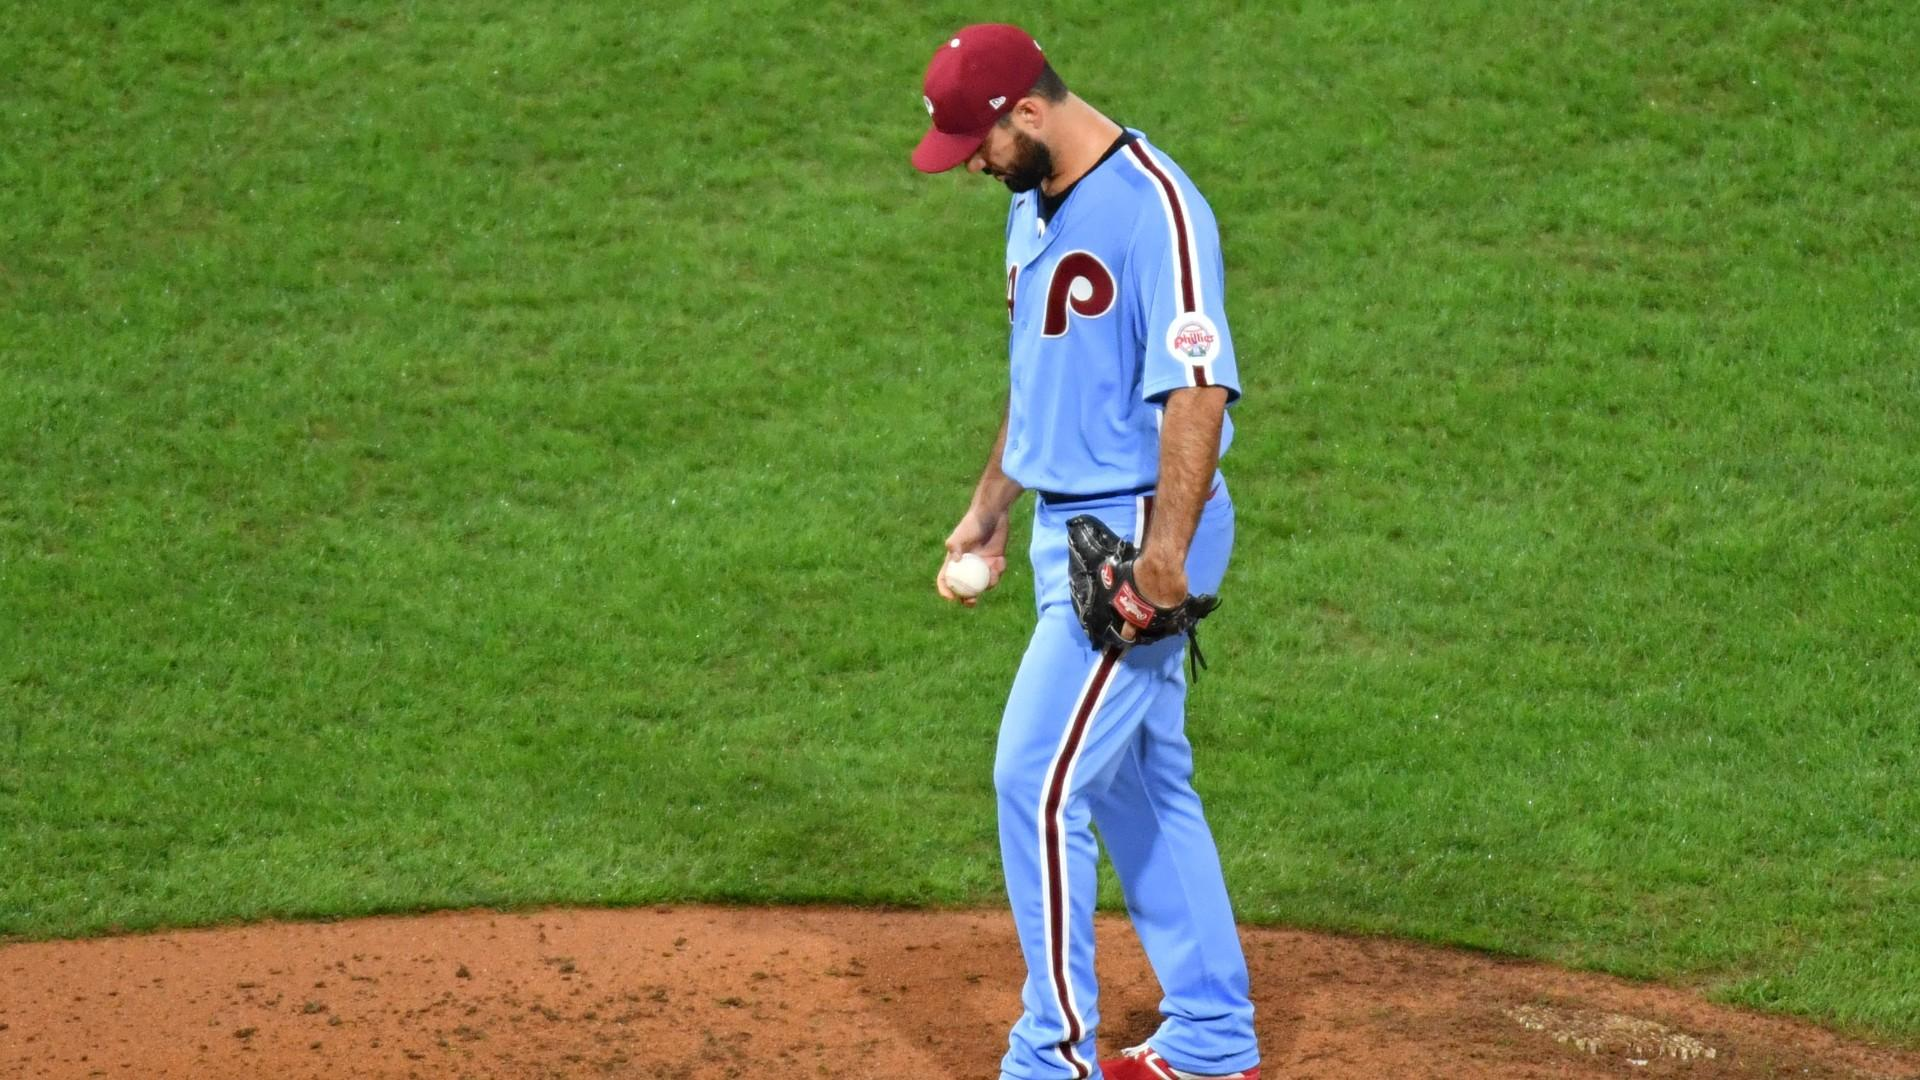 Phillies' bullpen on pace to join dubious company with ERA over 7.00